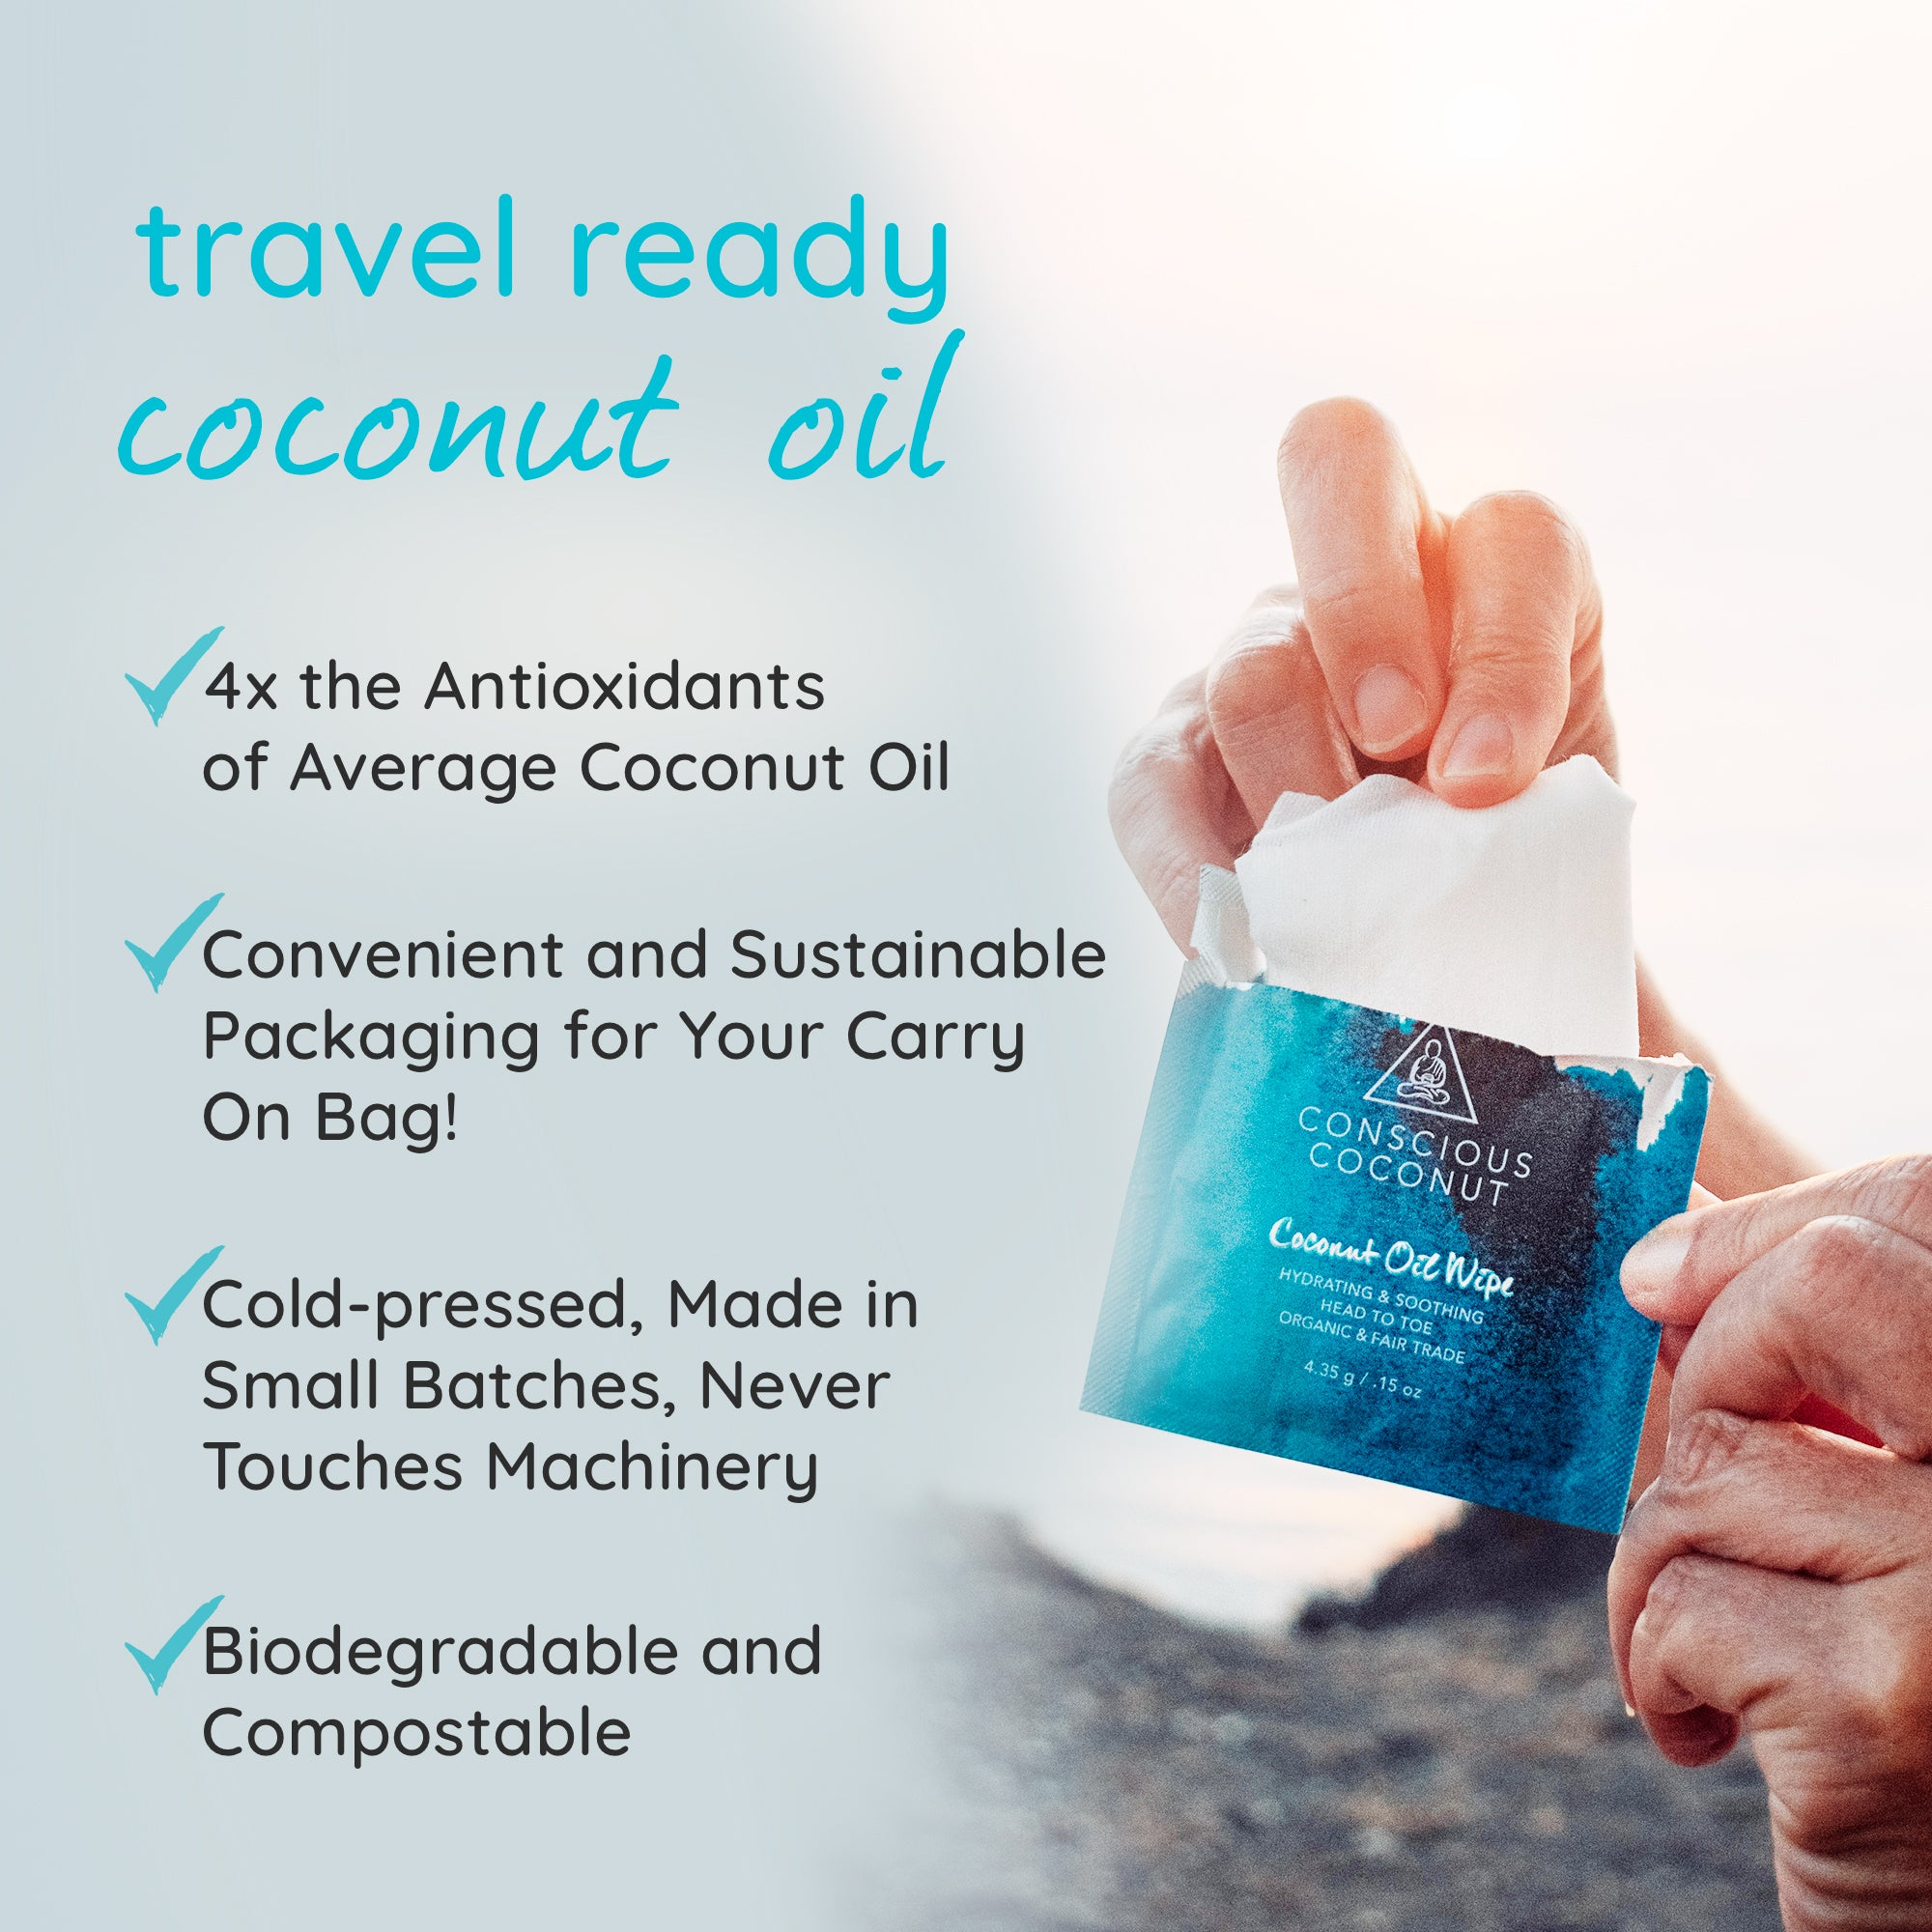 NEW Organic Coconut Oil Wipes (5 Travel Pack)